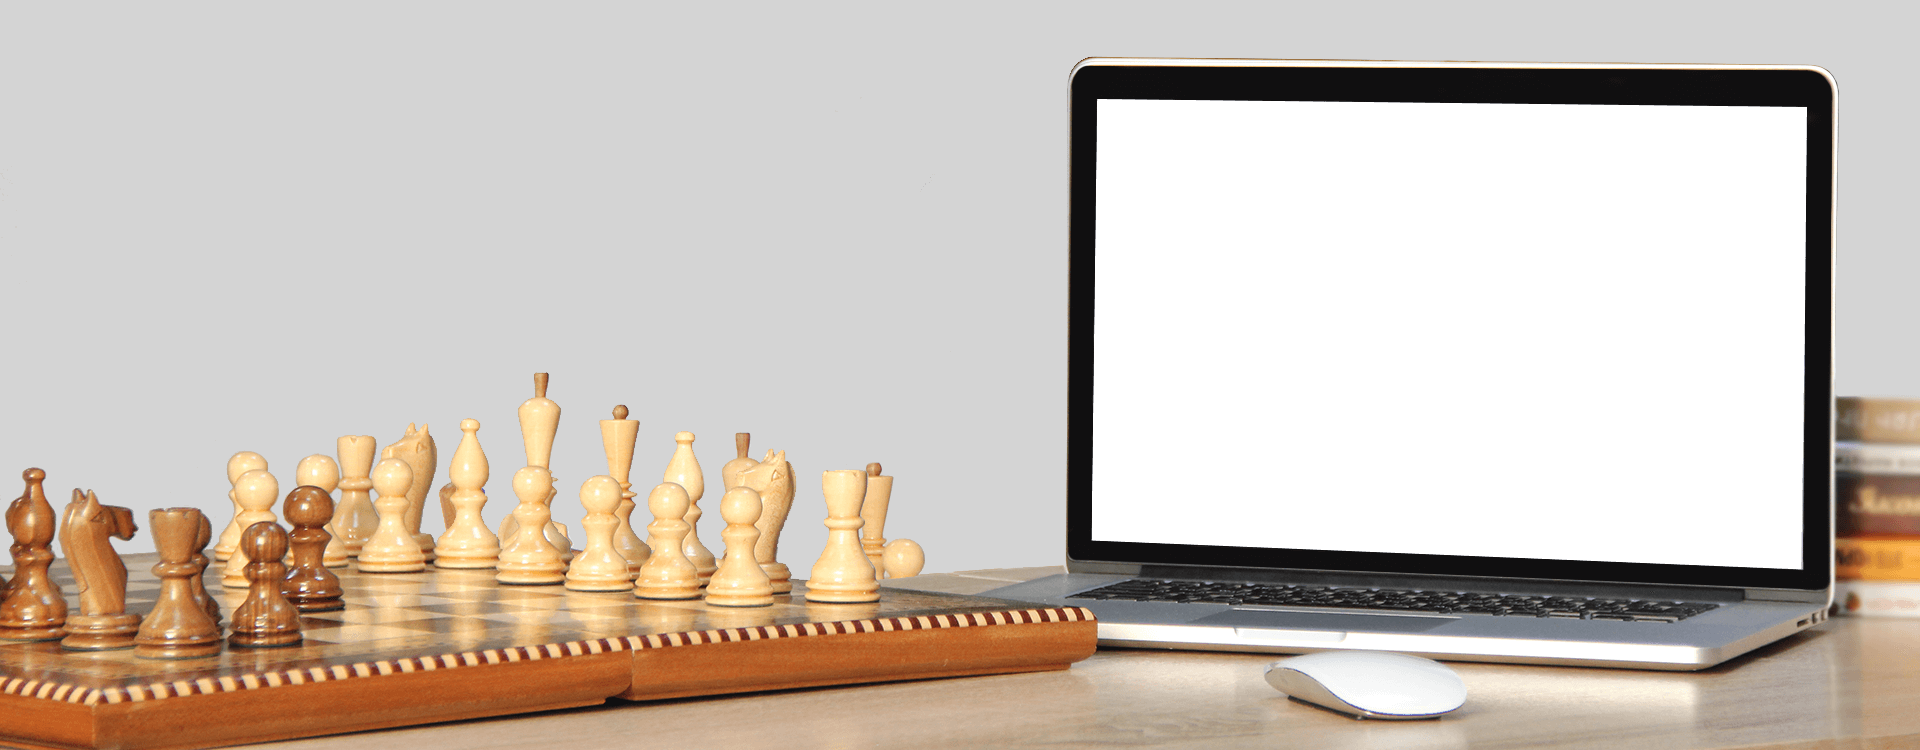 THE FIRST INTERNATIONAL ONLINE CHESS UNIVERSITY